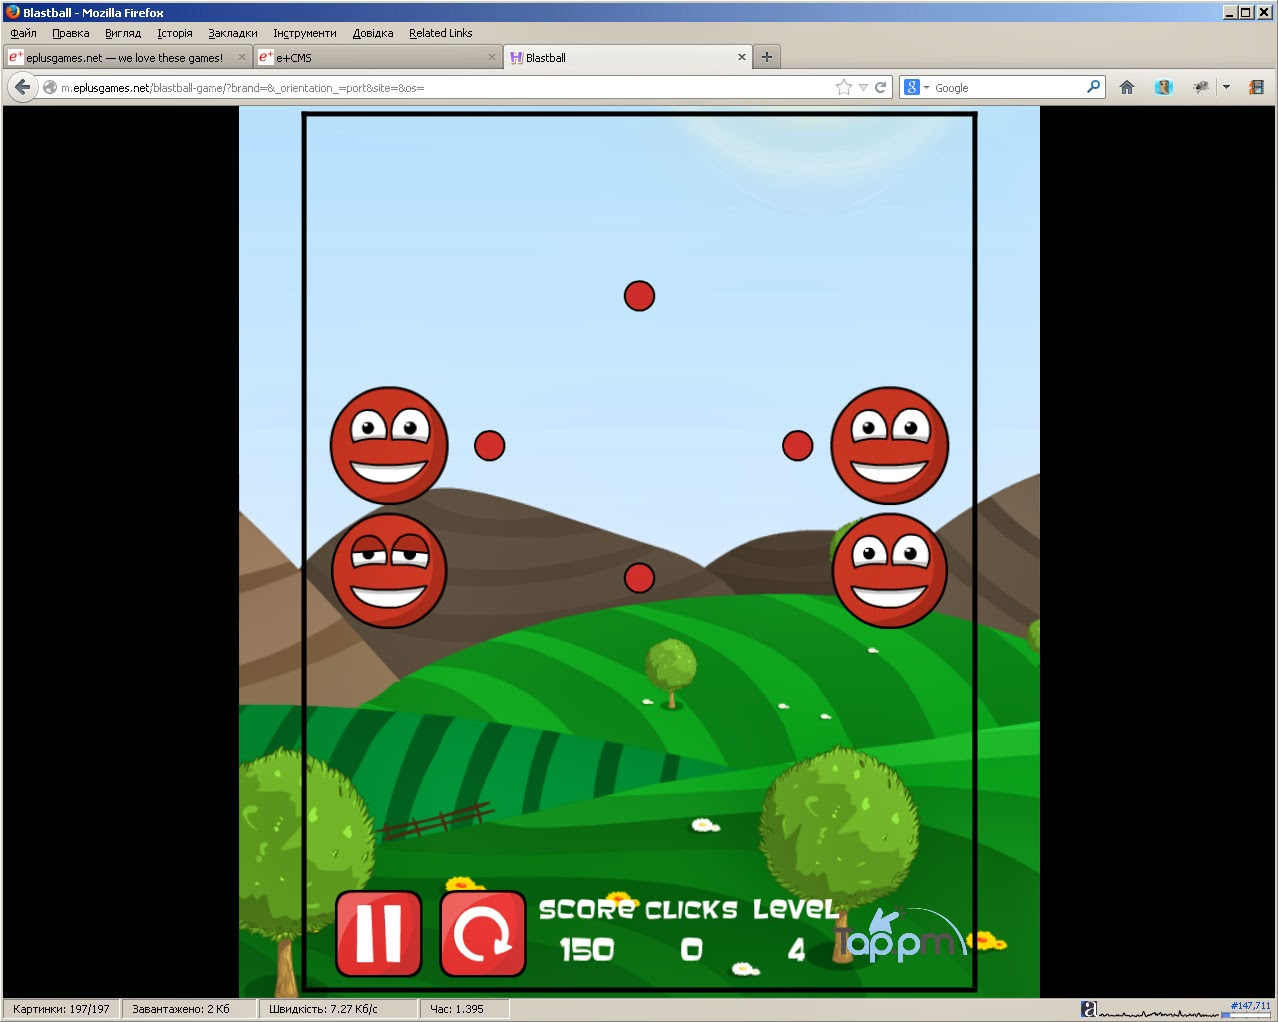 http://m.eplusgames.net/blastball-game/